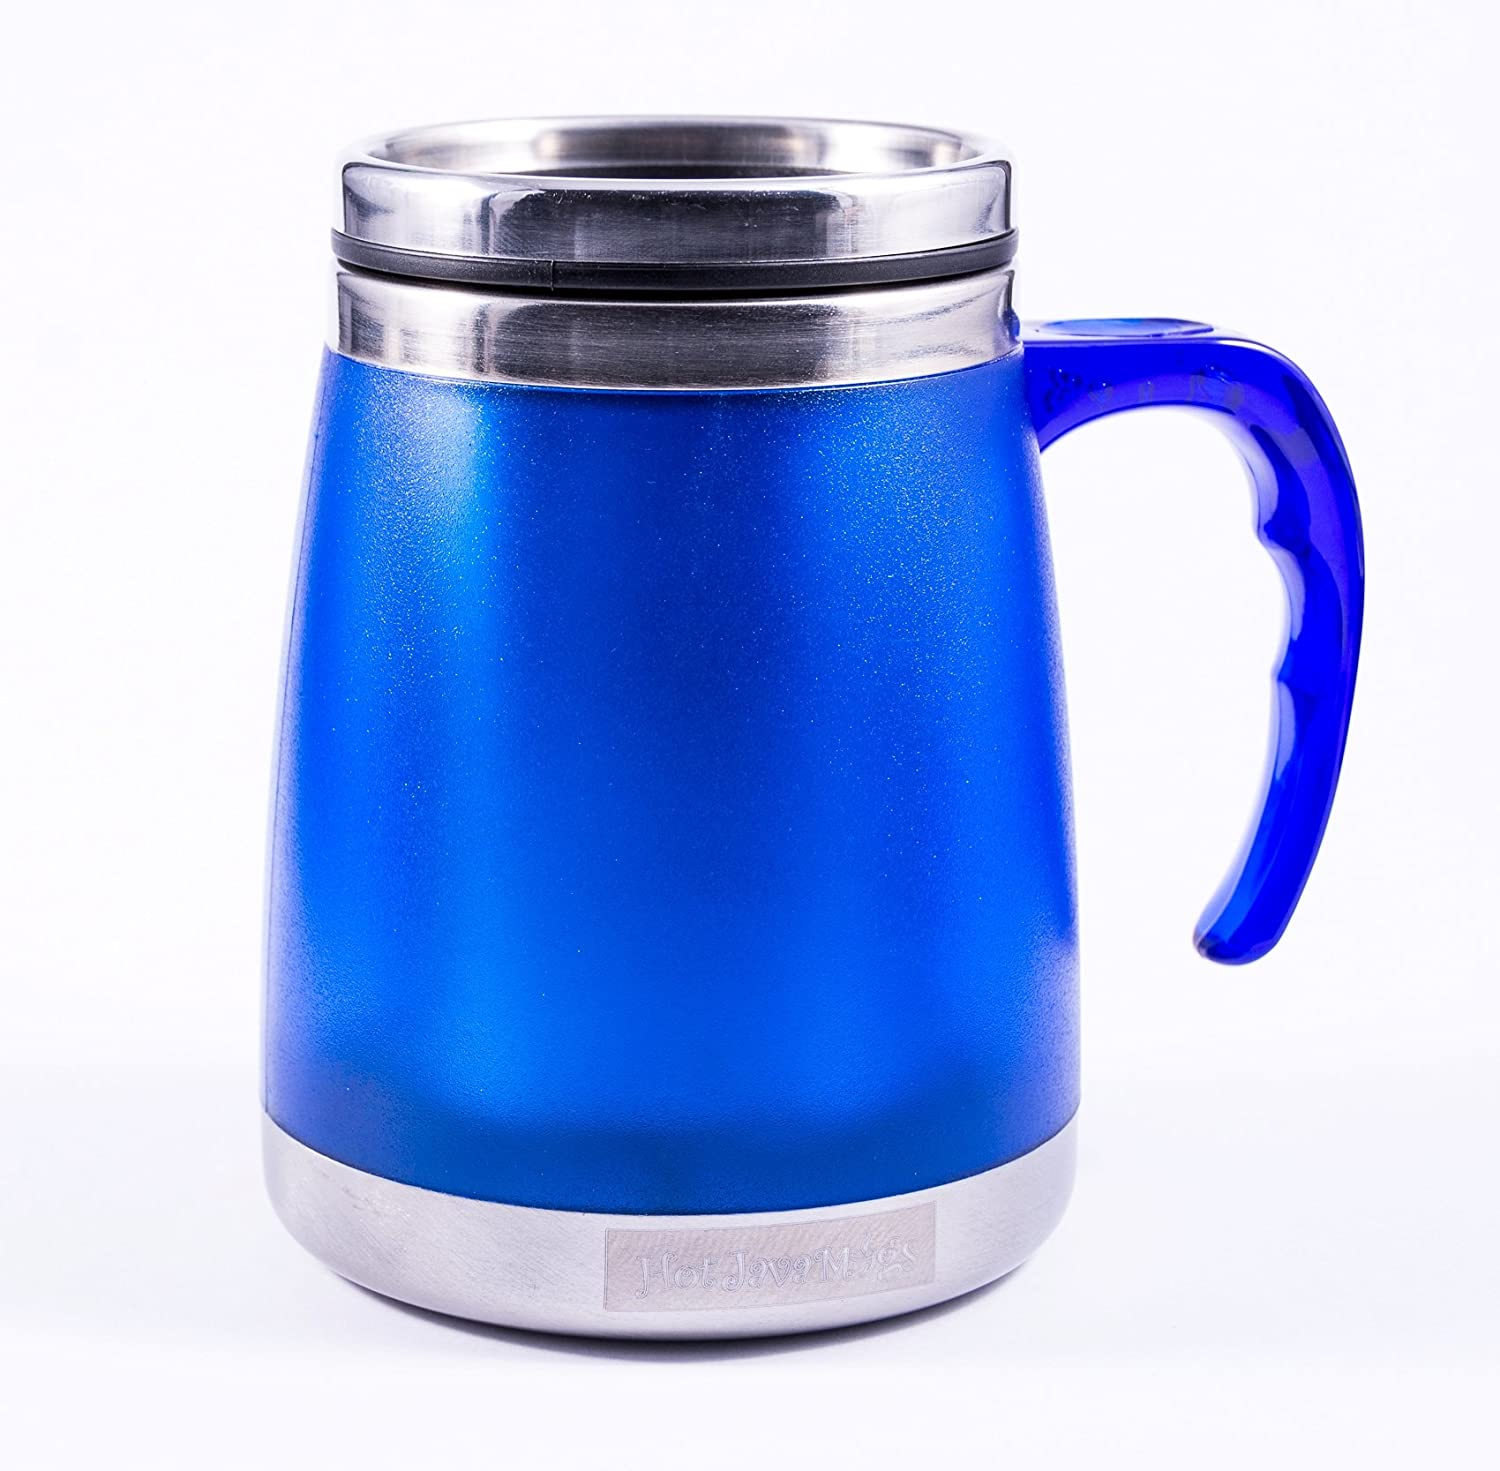 Nice Travel Mug Insulated Coffee Mugs With Lids An Awesome Idea For